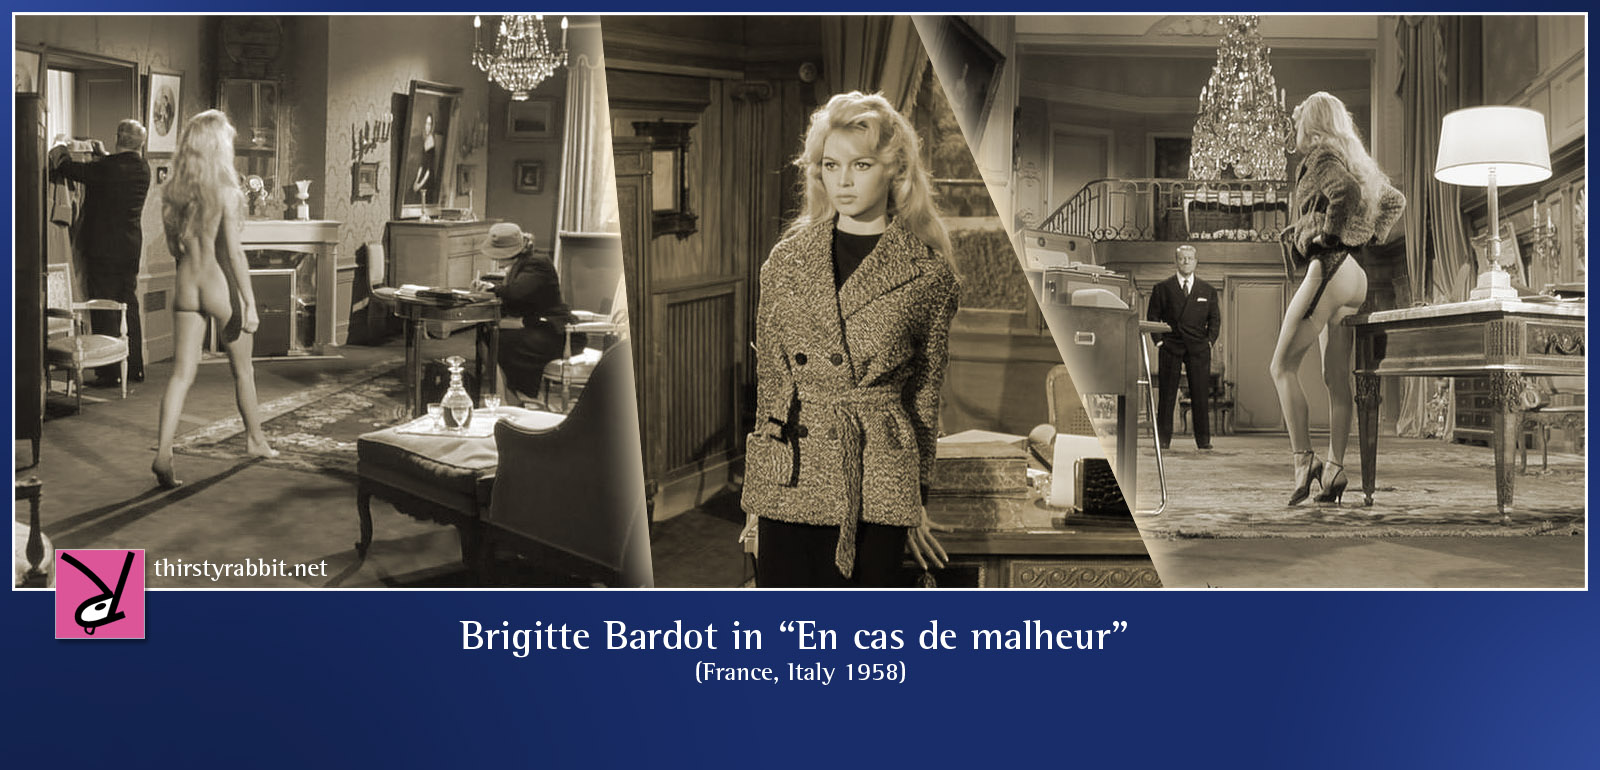 a complicated woman: early brigitte bardot | thirstyrabbit